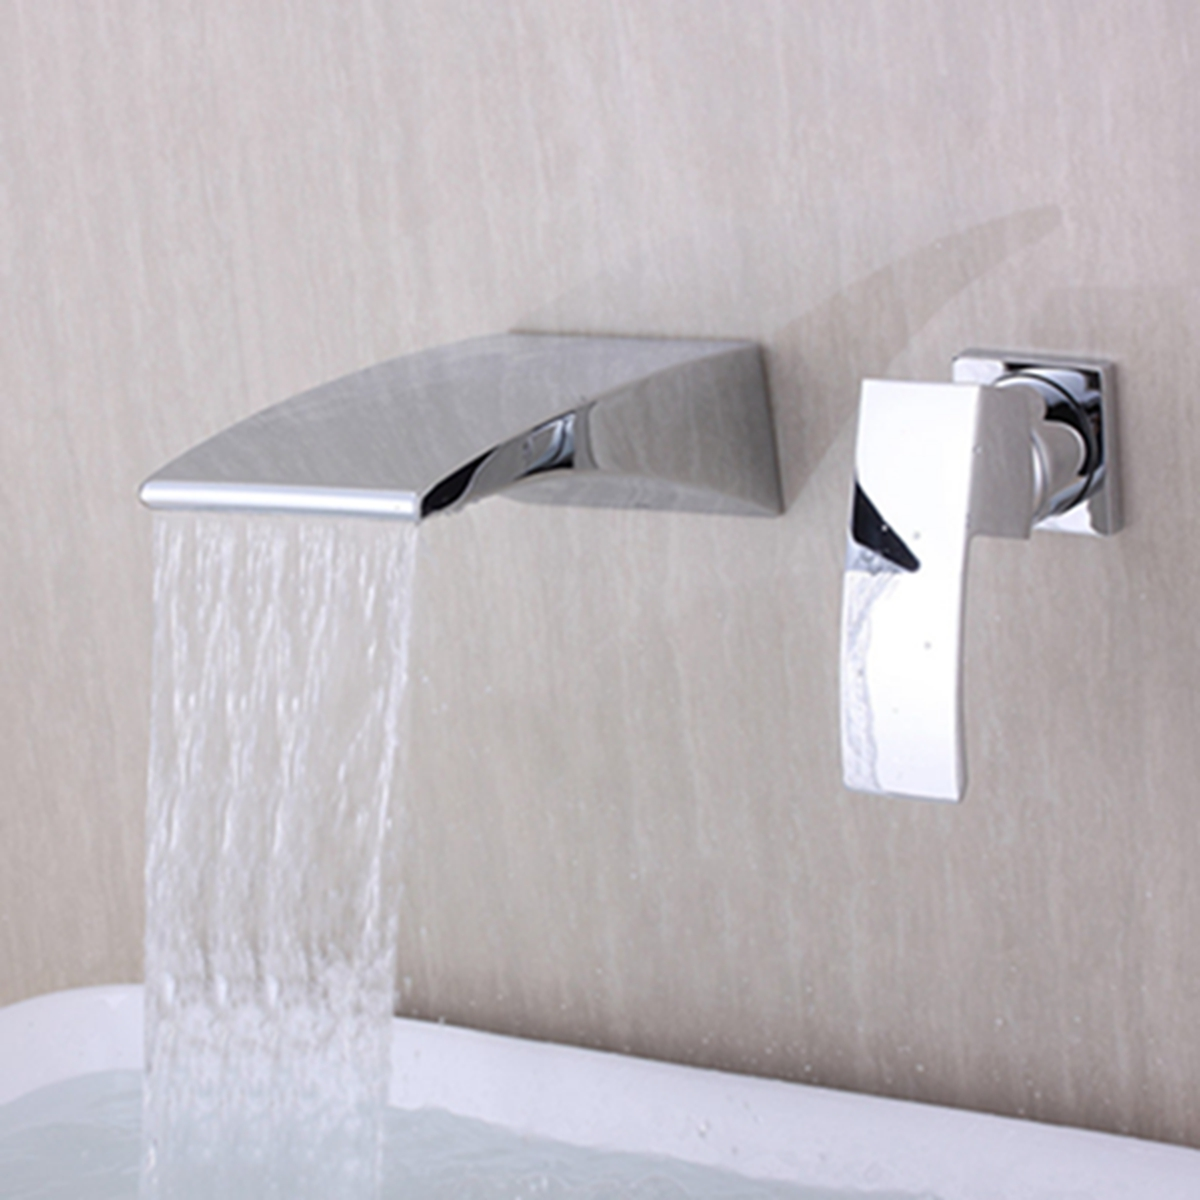 Waterfall Curve Spout Bathroom Faucet Chrome Single Handle Wall Mount Mixer Tap